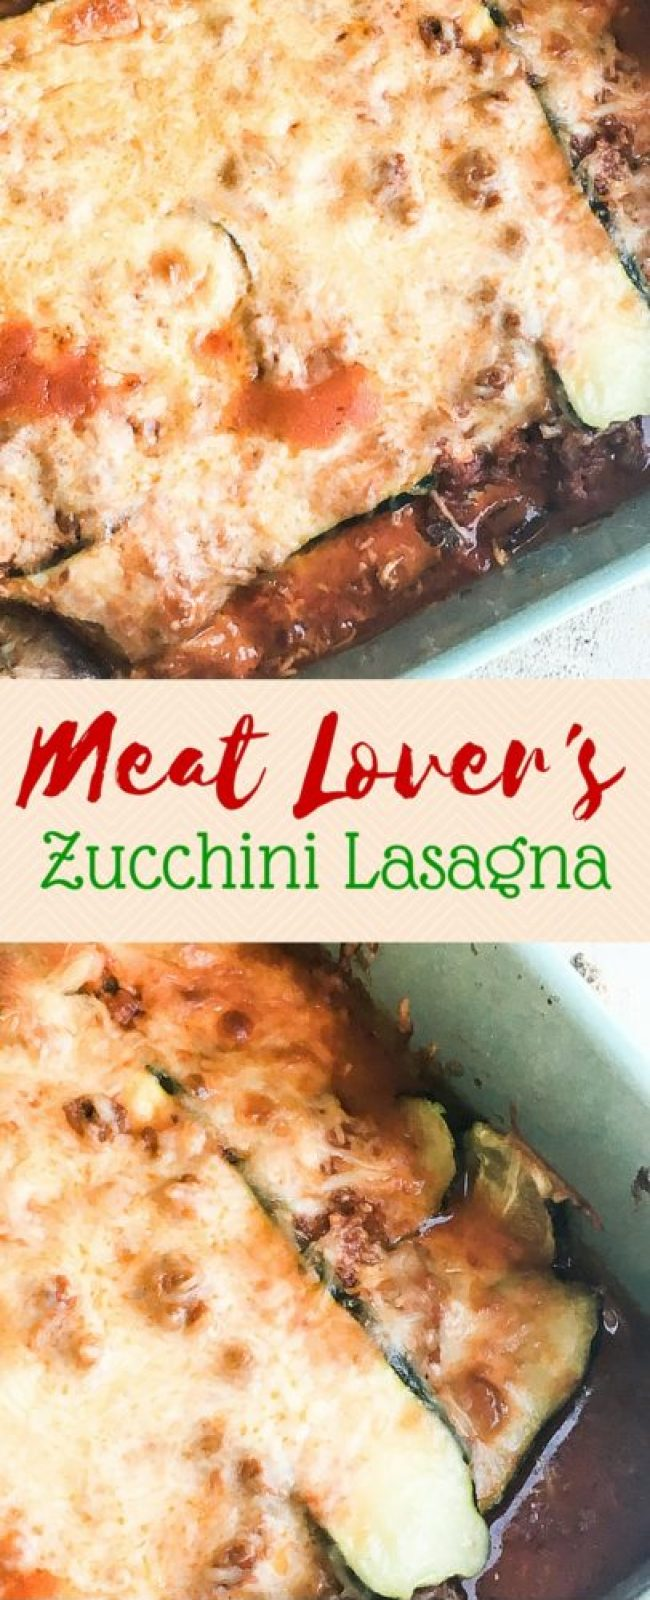 This meat lover's zucchini lasagna is a better-for-you and absolutely DELICIOUS!